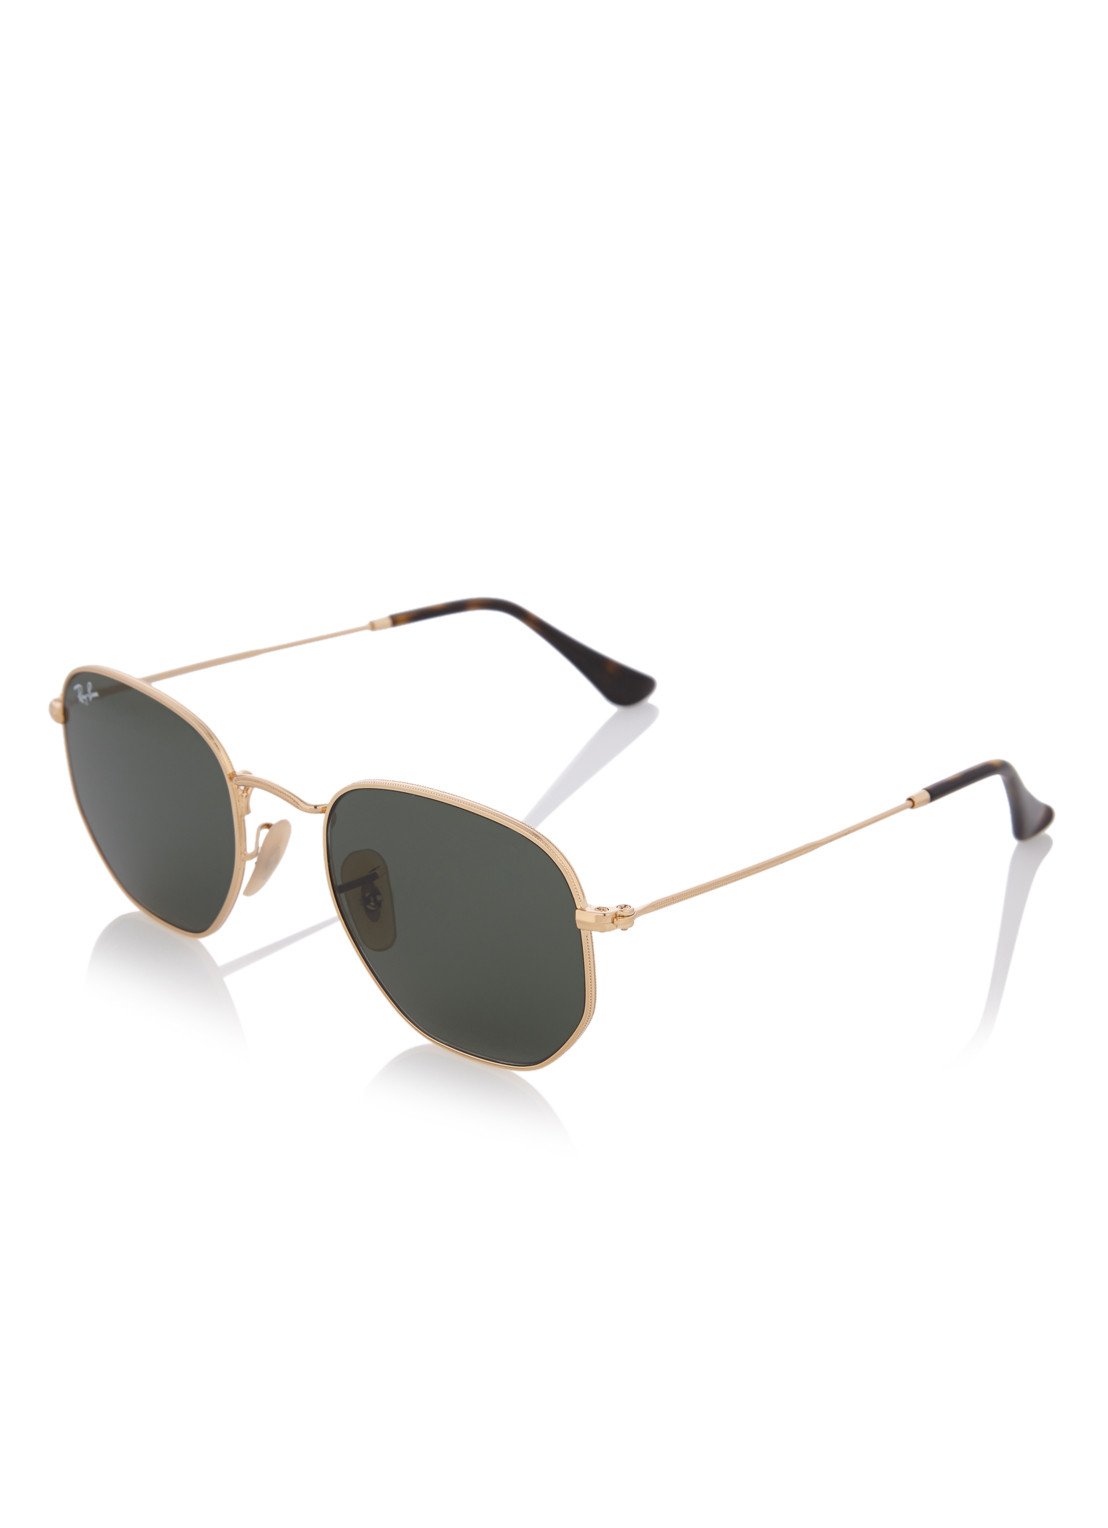 Ray Ban Zonnebril RB3548N